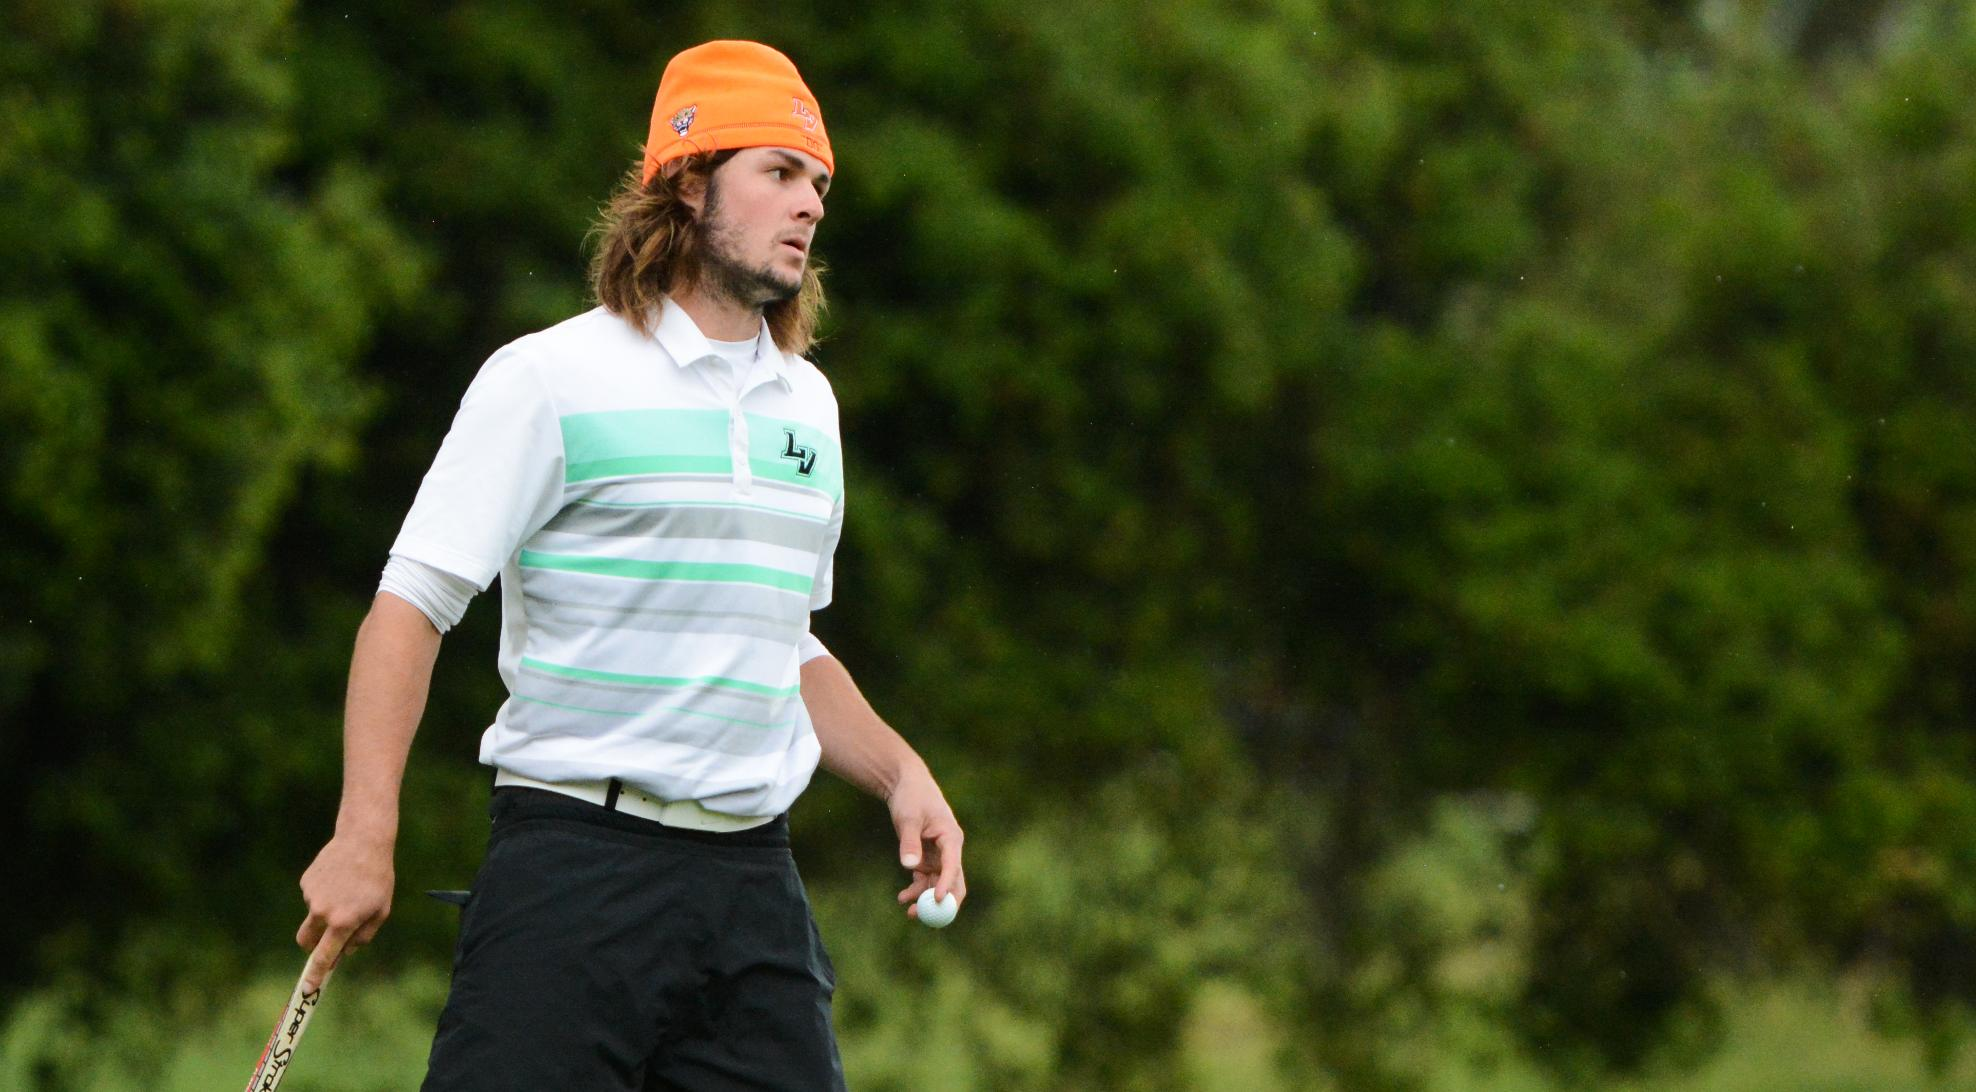 Men's Golf takes commanding lead at West Cup